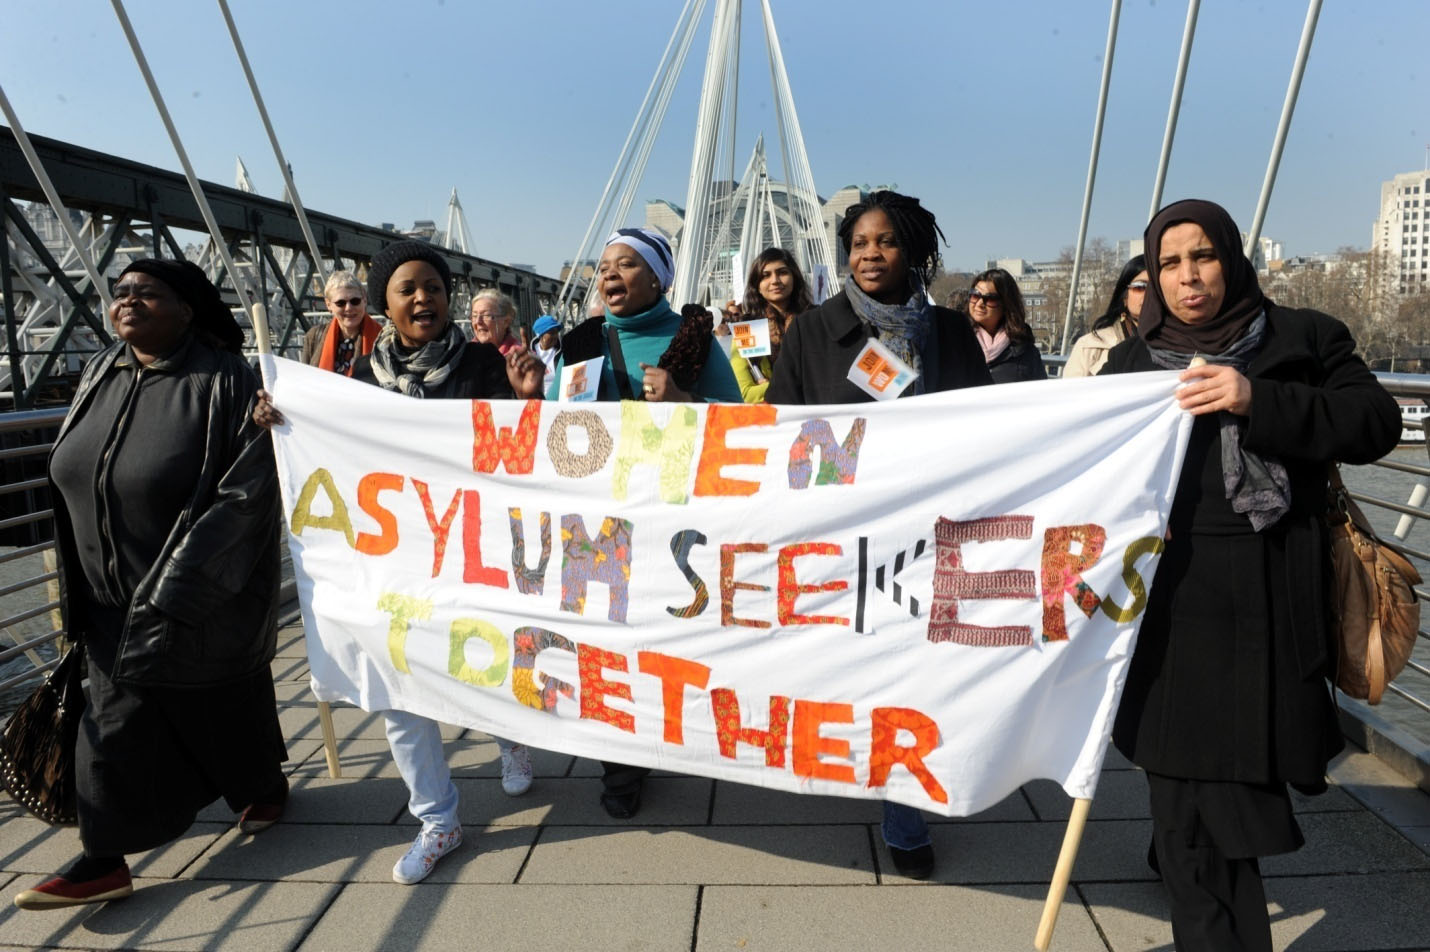 women-asylum-seekers-together